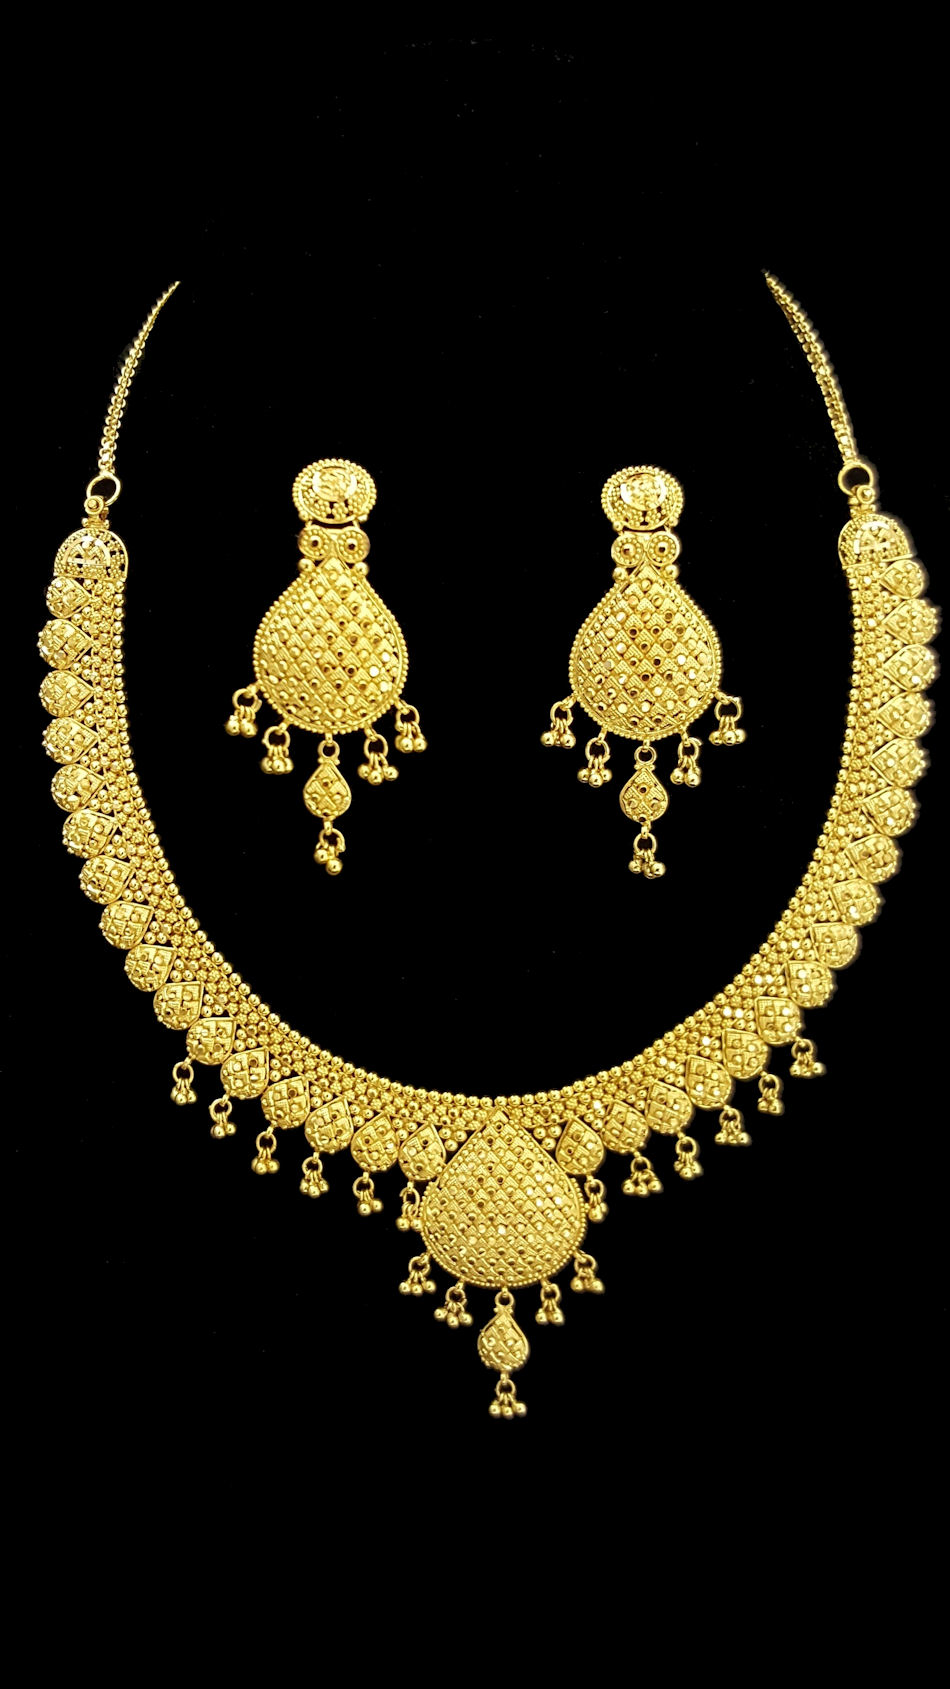 9a24ae17a29 22k gold necklace set (1002)